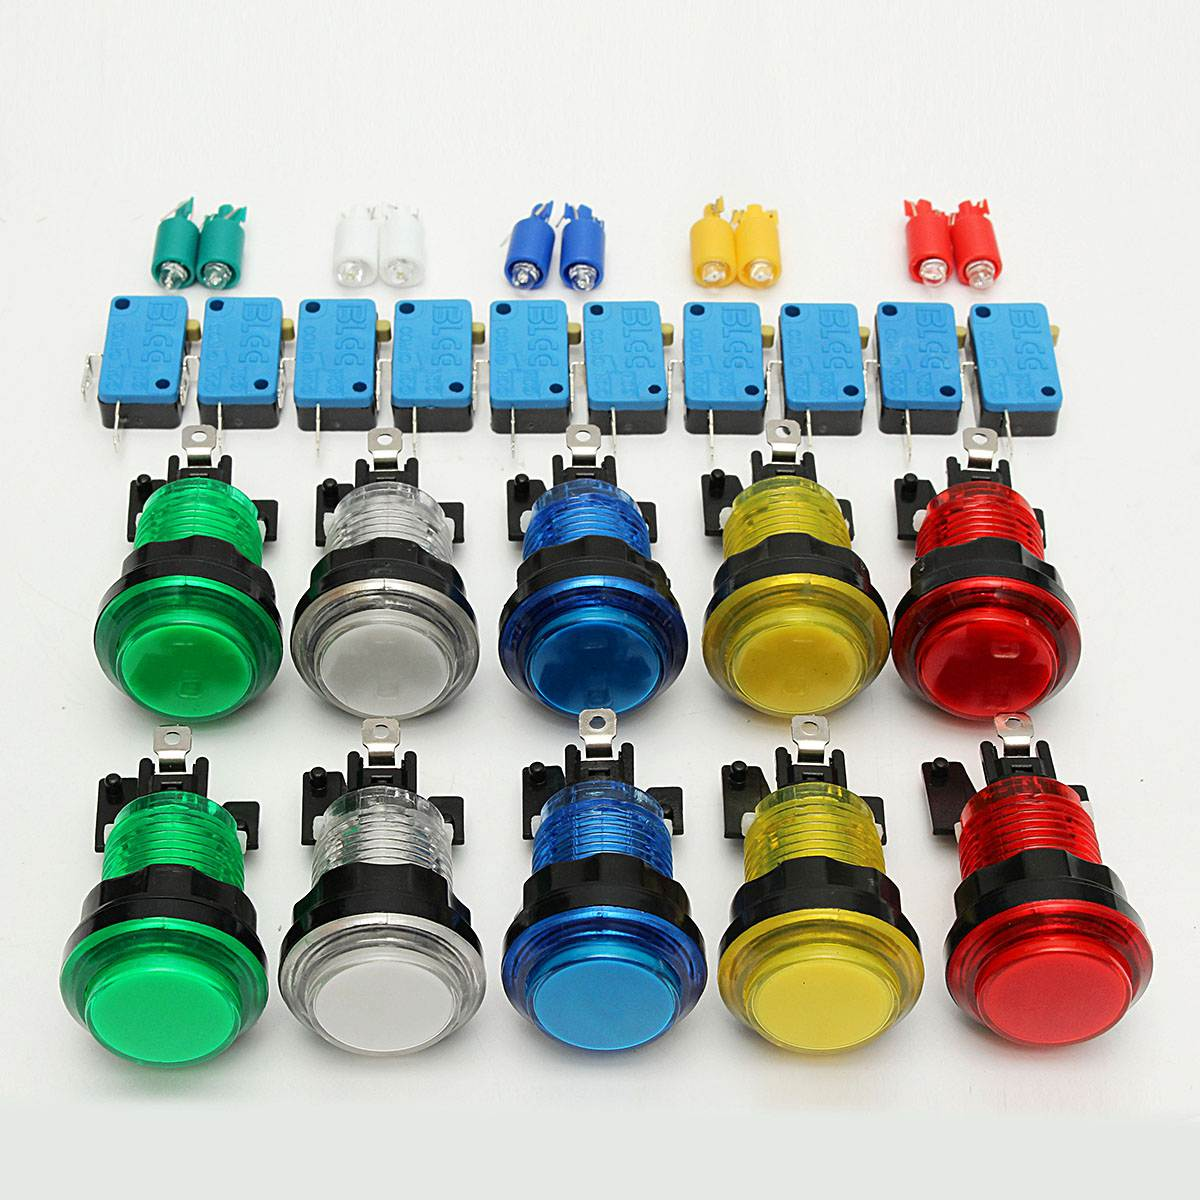 10 Pcs Switches LED Light Illuminated Full Colors Push Button With Micro Switch Arcade DIY kits Parts